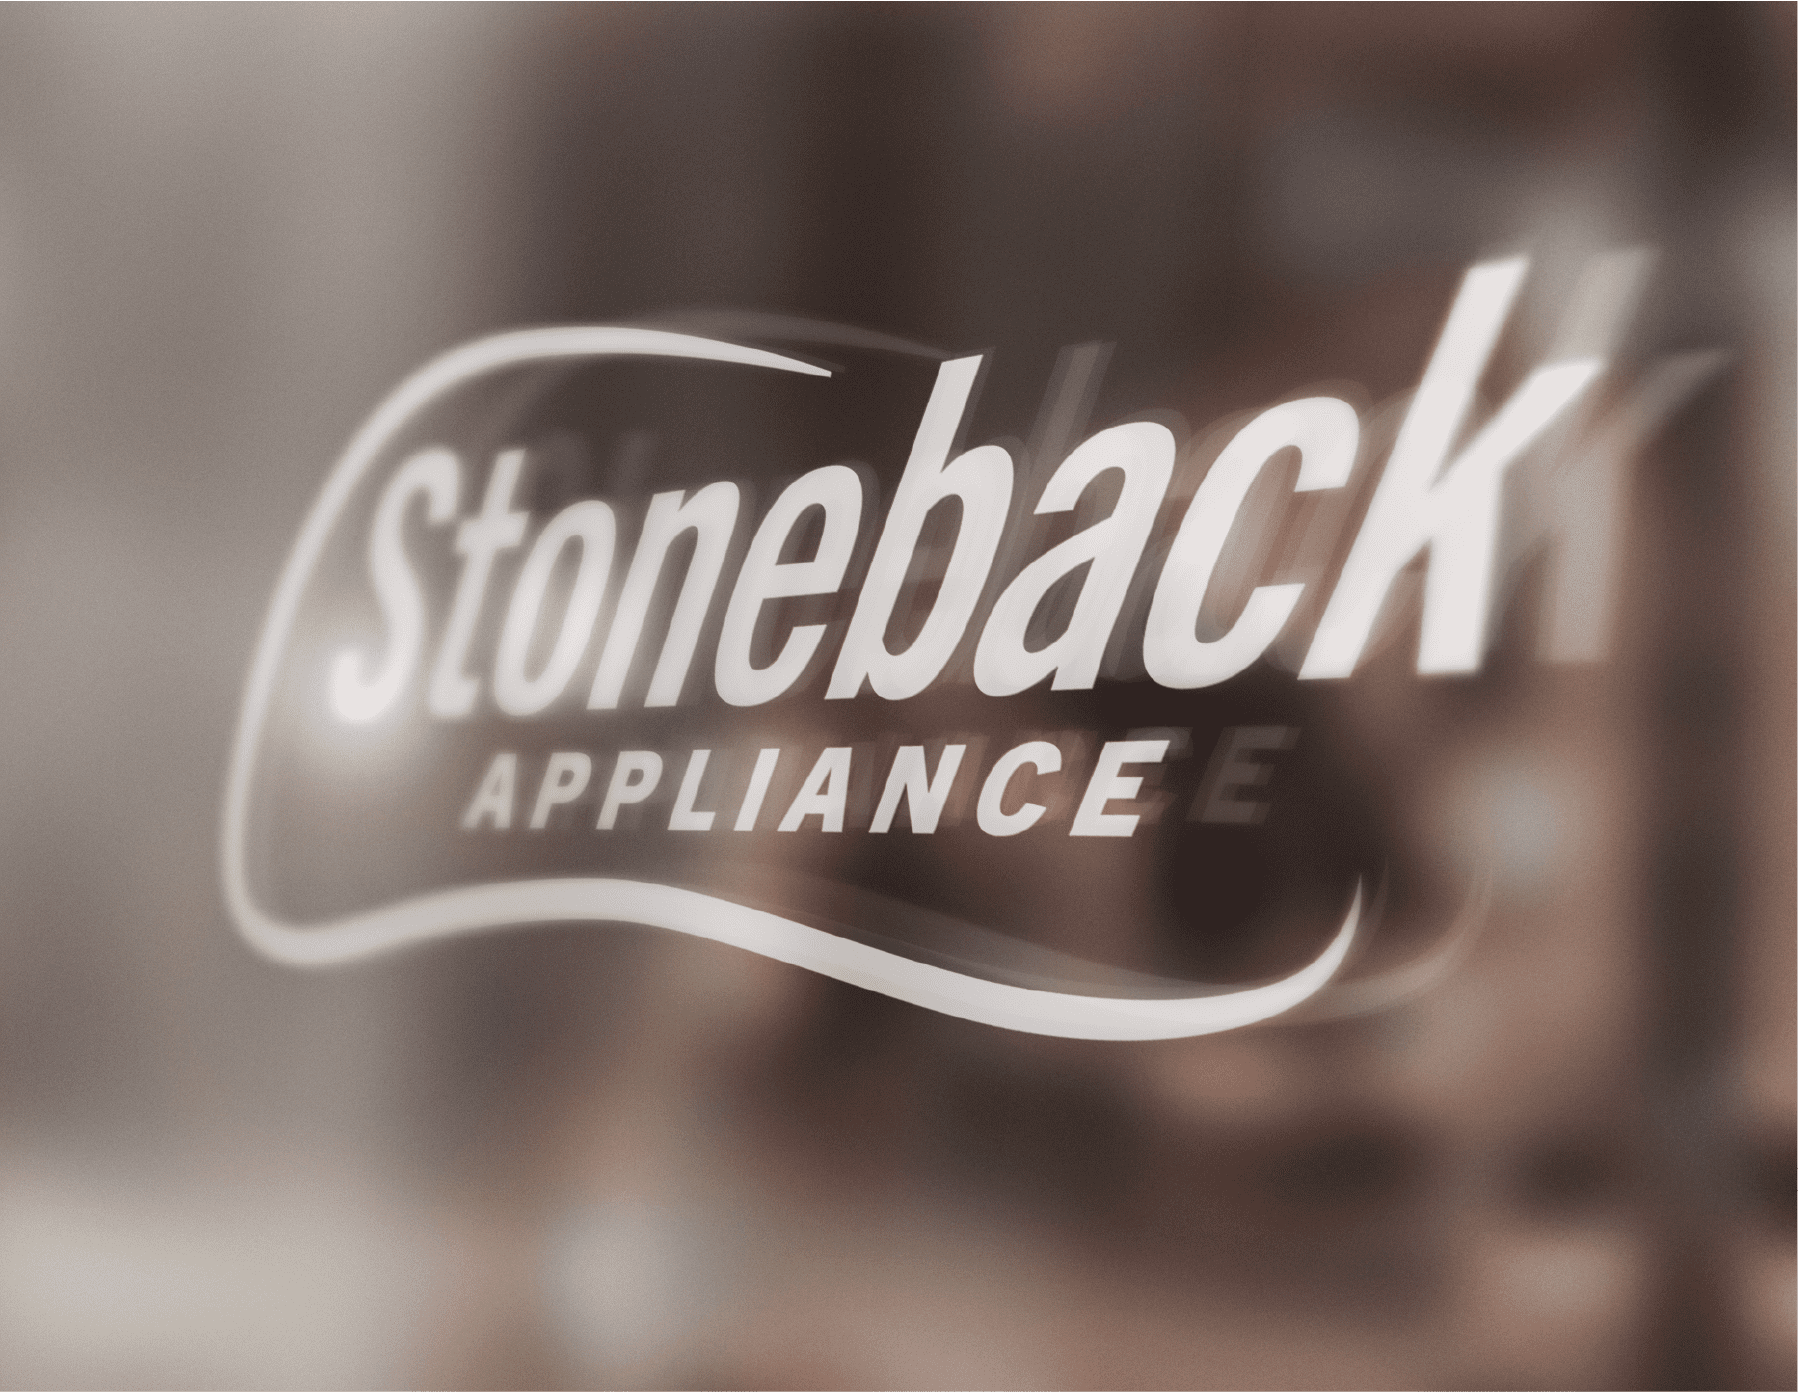 Stoneback Appliance